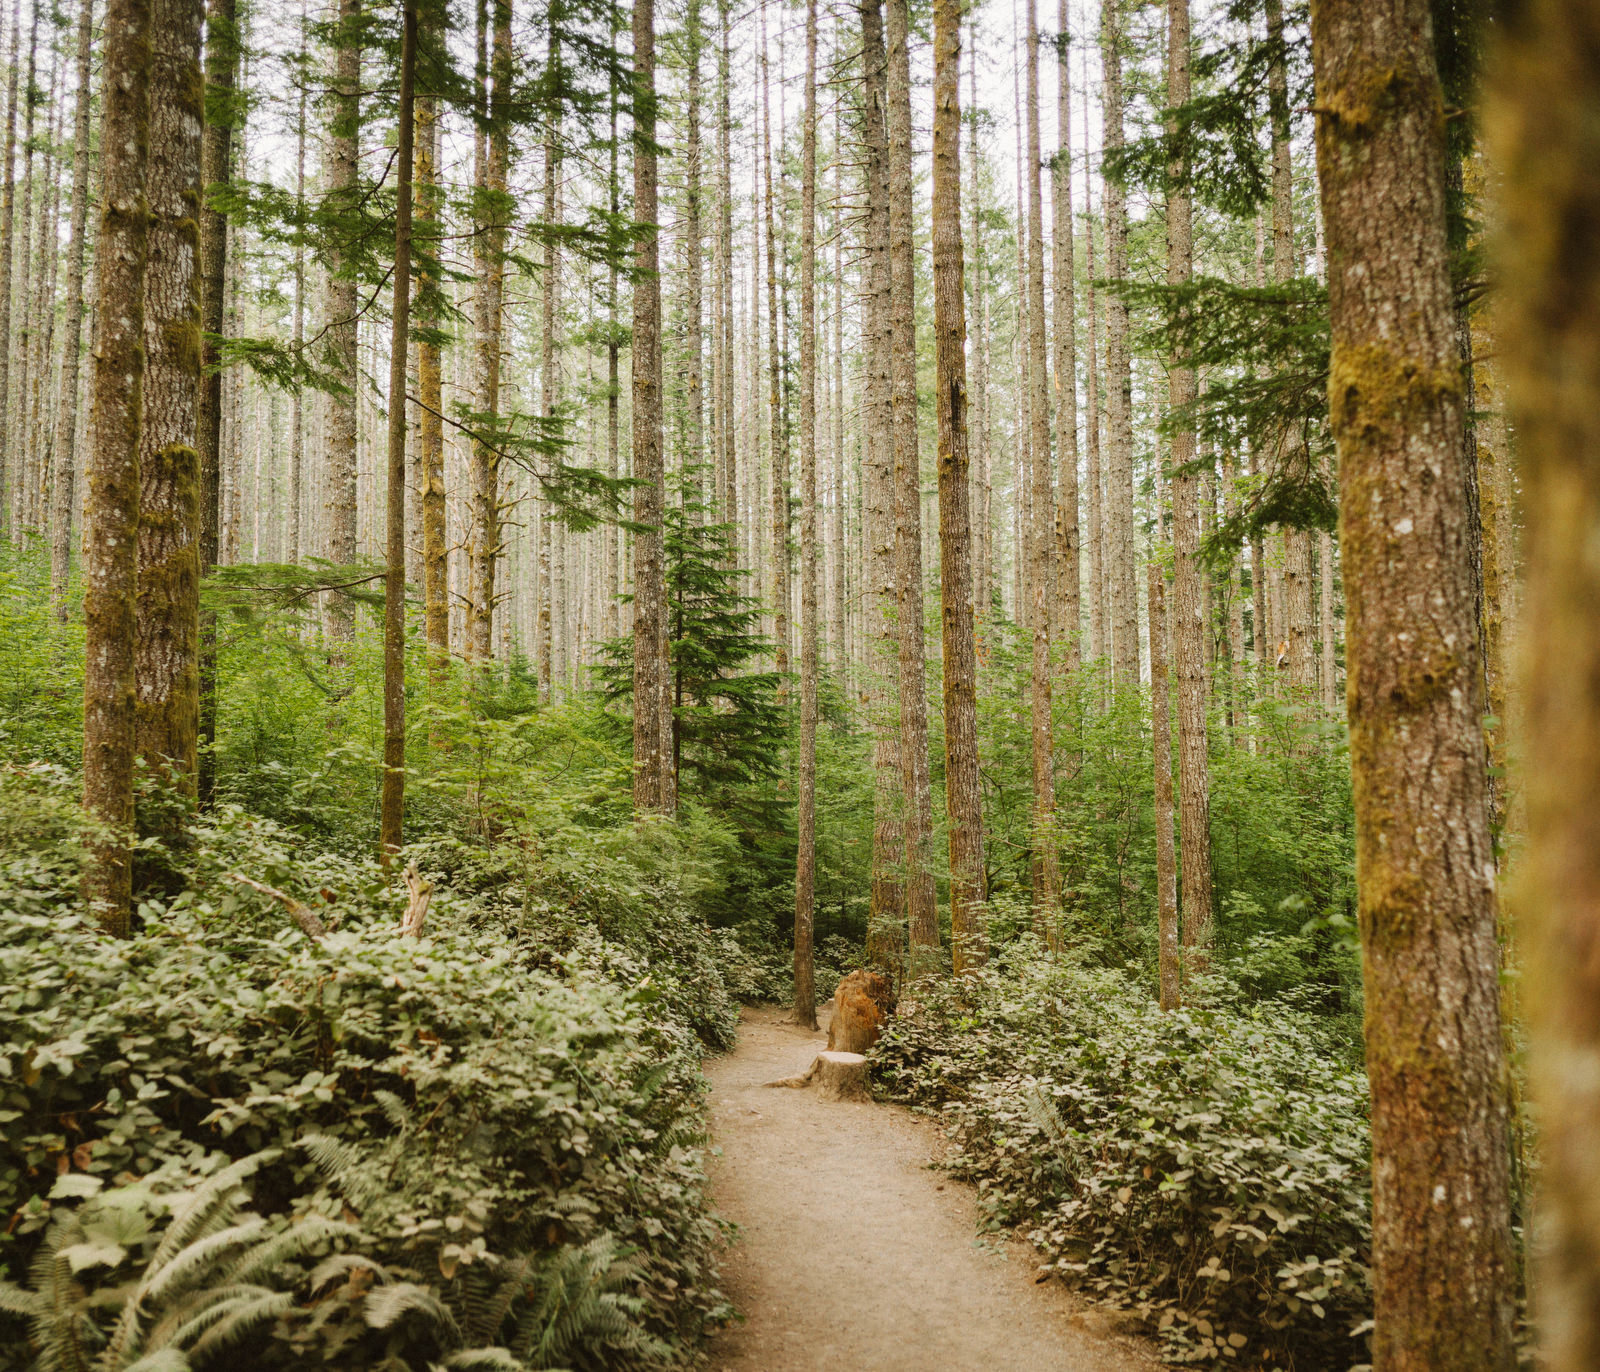 athena-and-camron-seattle-elopement-wedding-benj-haisch-rattlesnake-lake-christian-couple-goals26